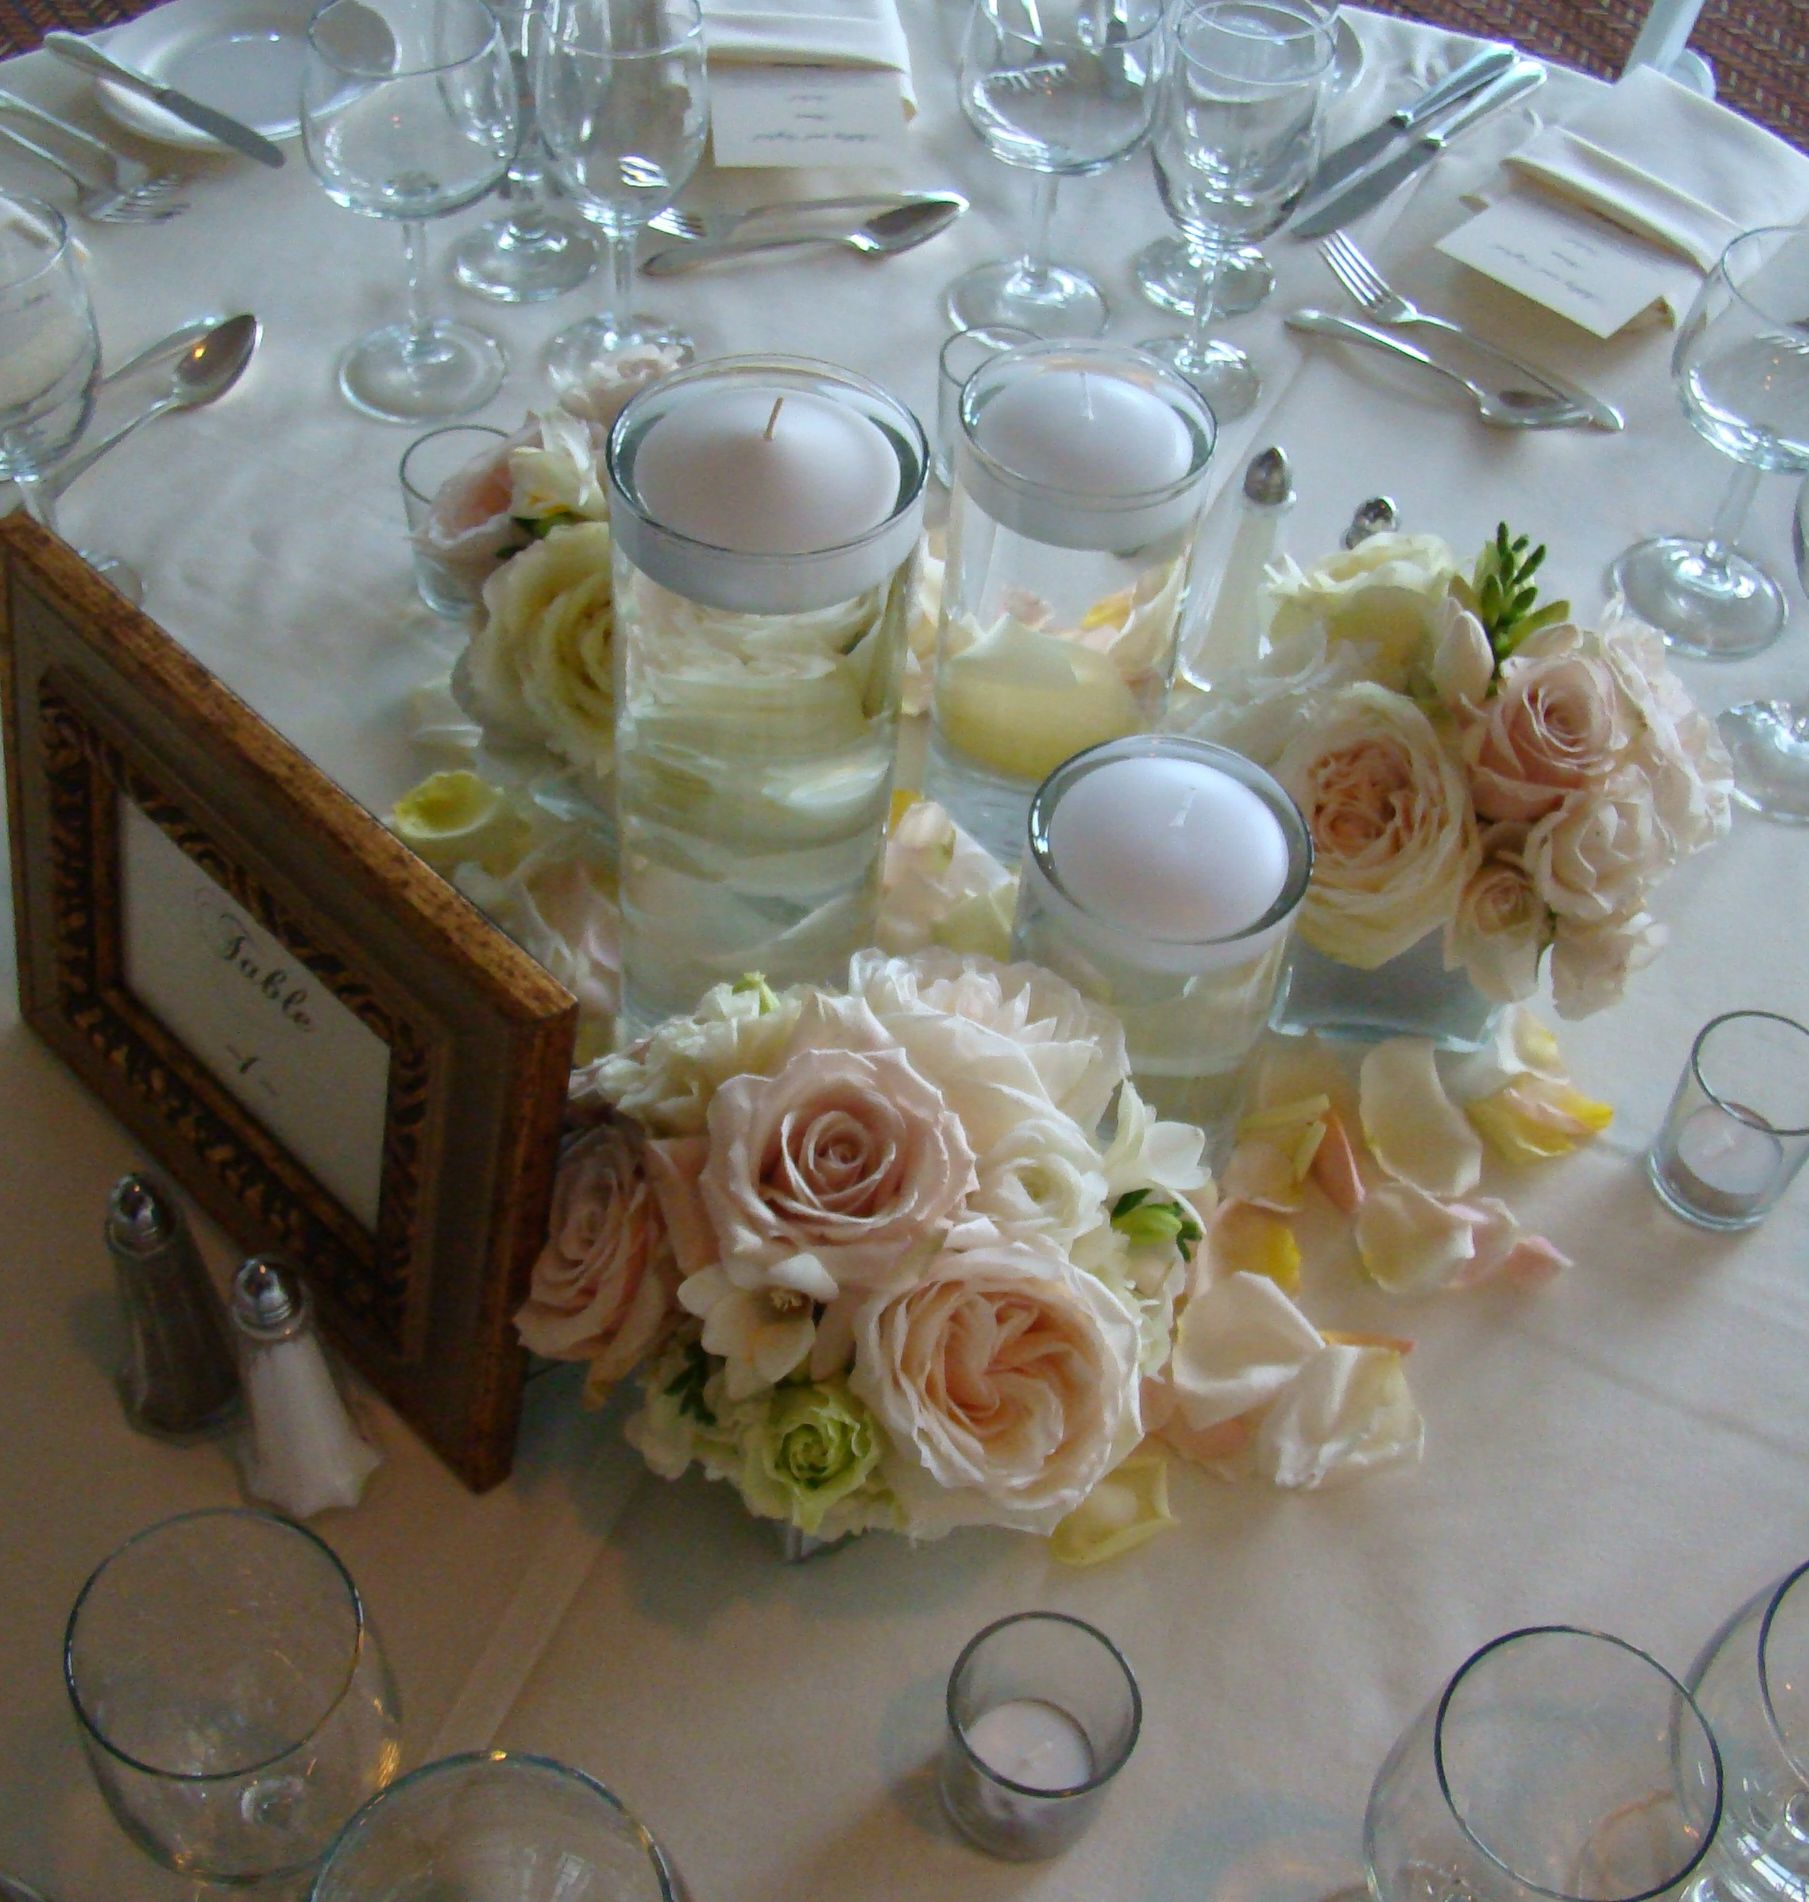 Vermont Wedding Flowers: Floating Candles Surrounded By Blush Garden Rose